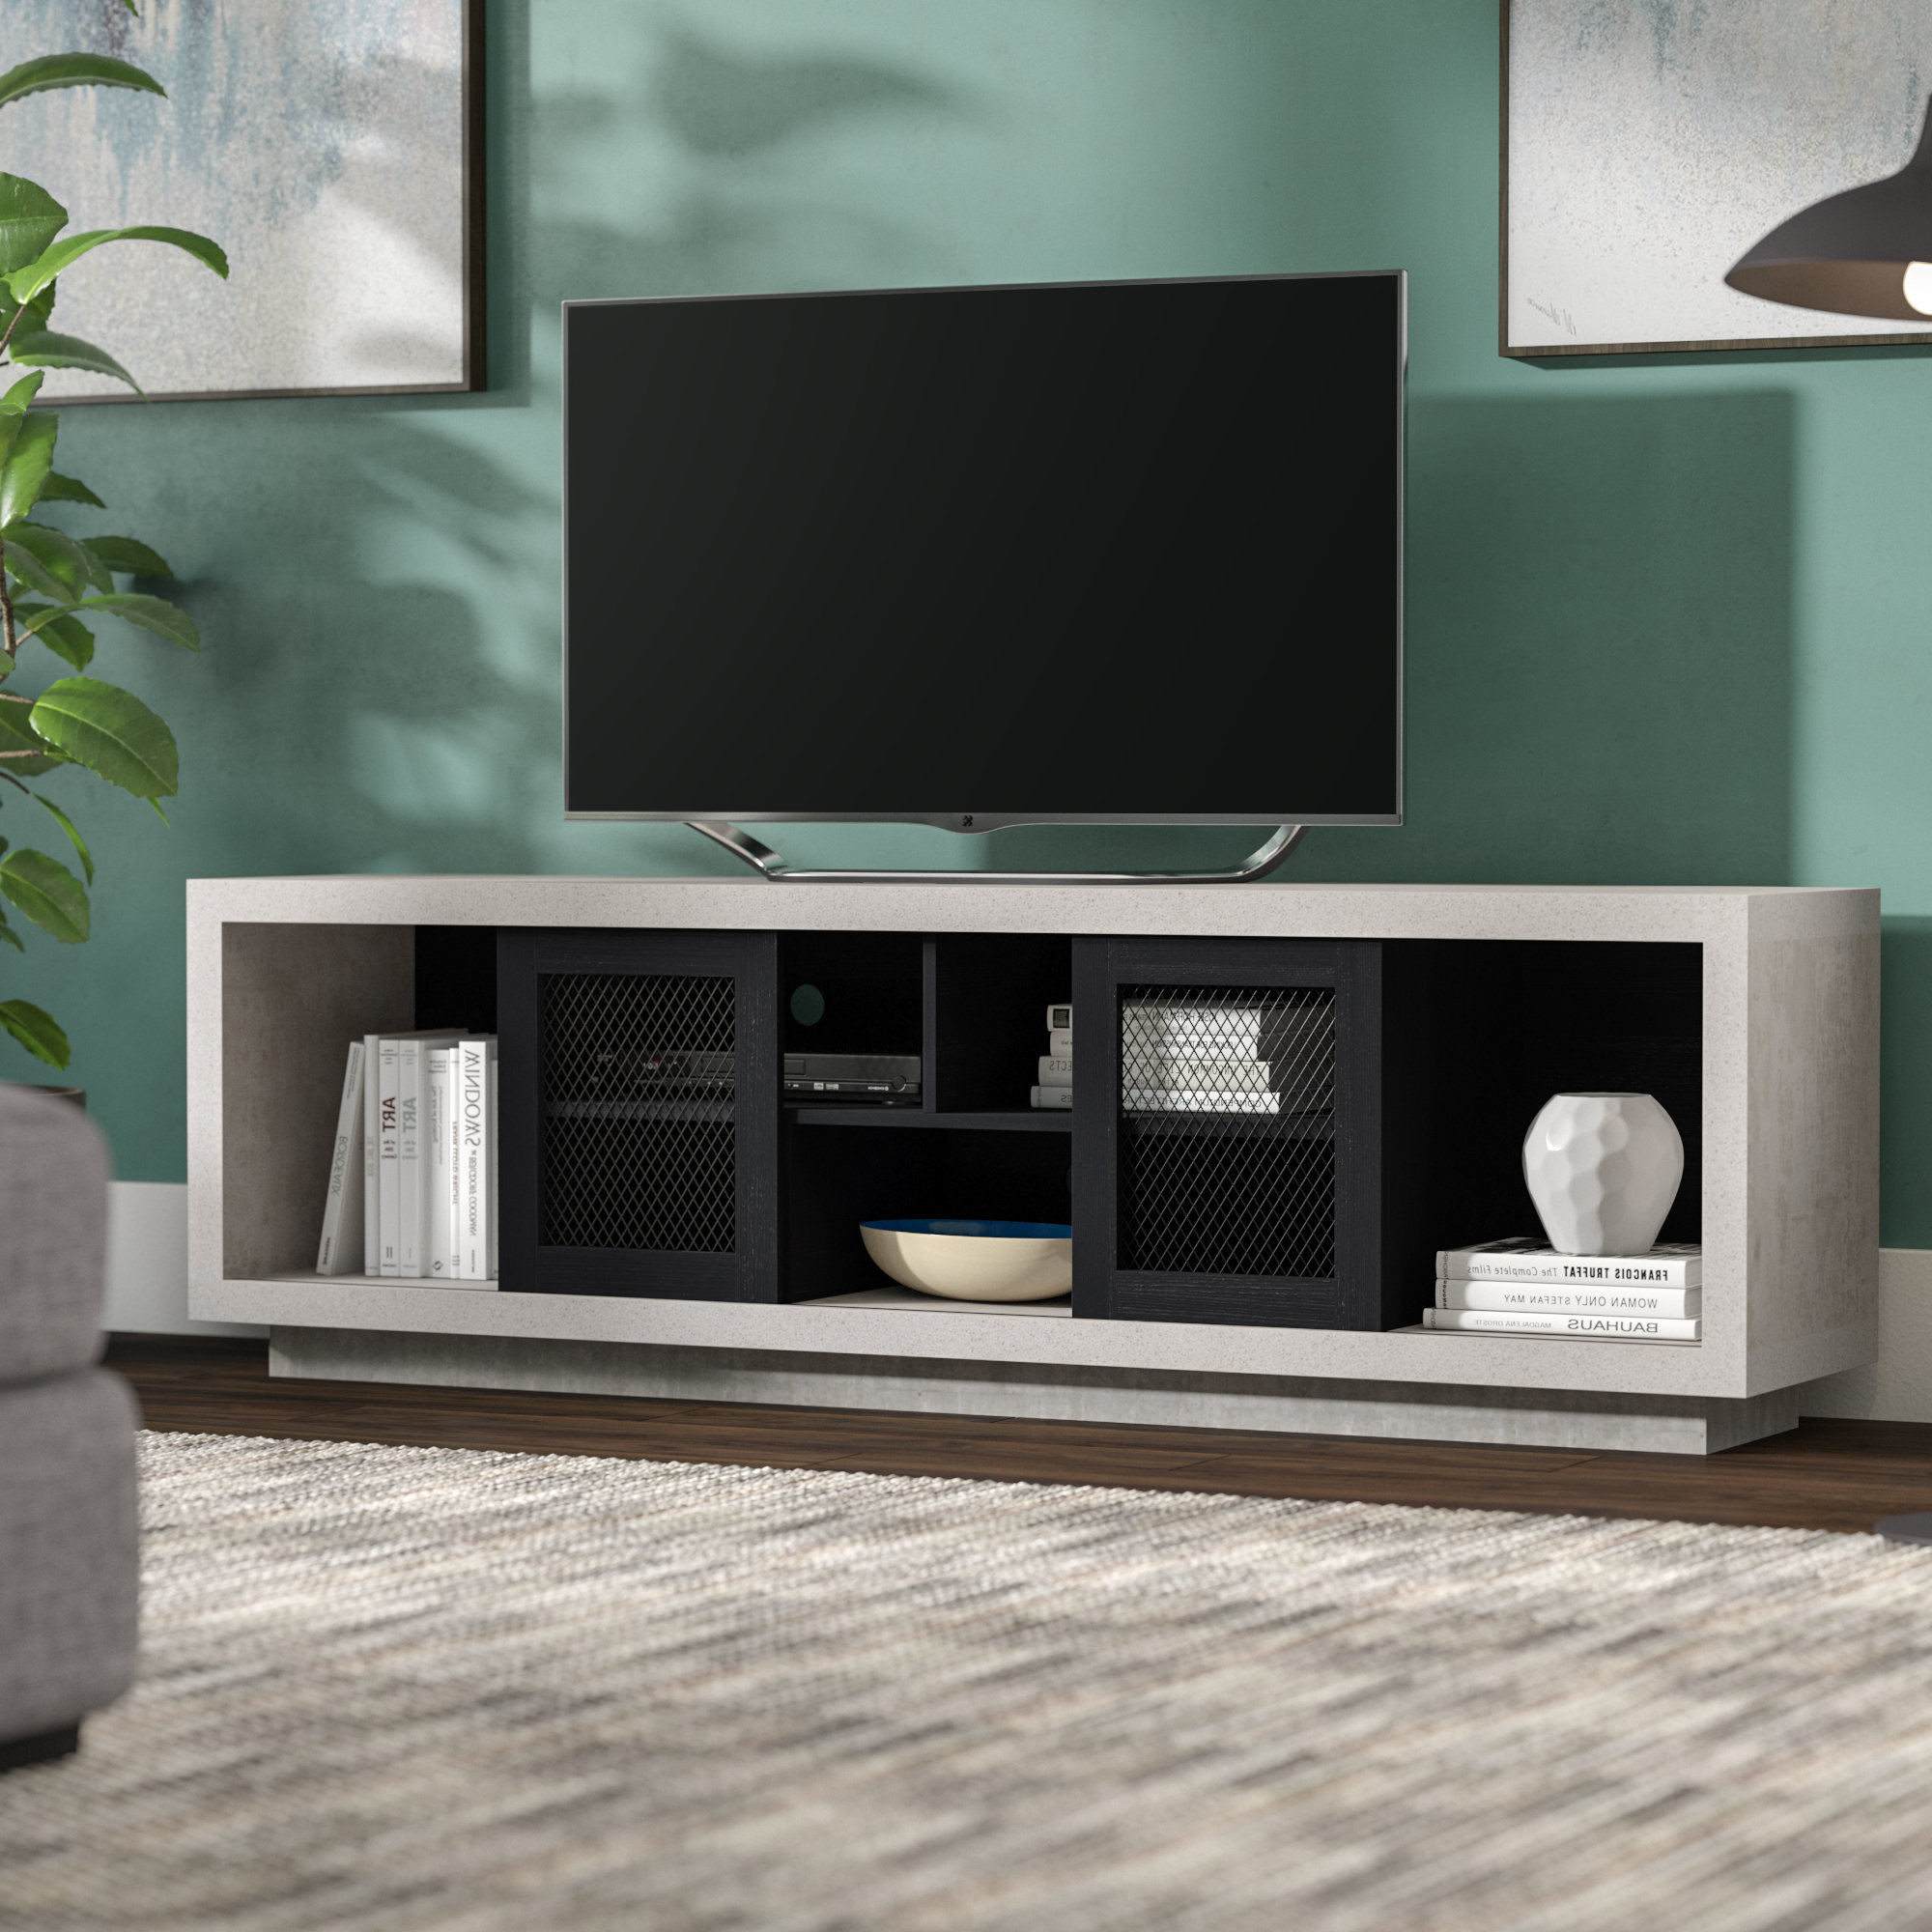 Best And Newest Brayden Studio Cioffi Industrial Tv Stand For Tvs Up To 70 For Industrial Tv Stands (Gallery 2 of 20)